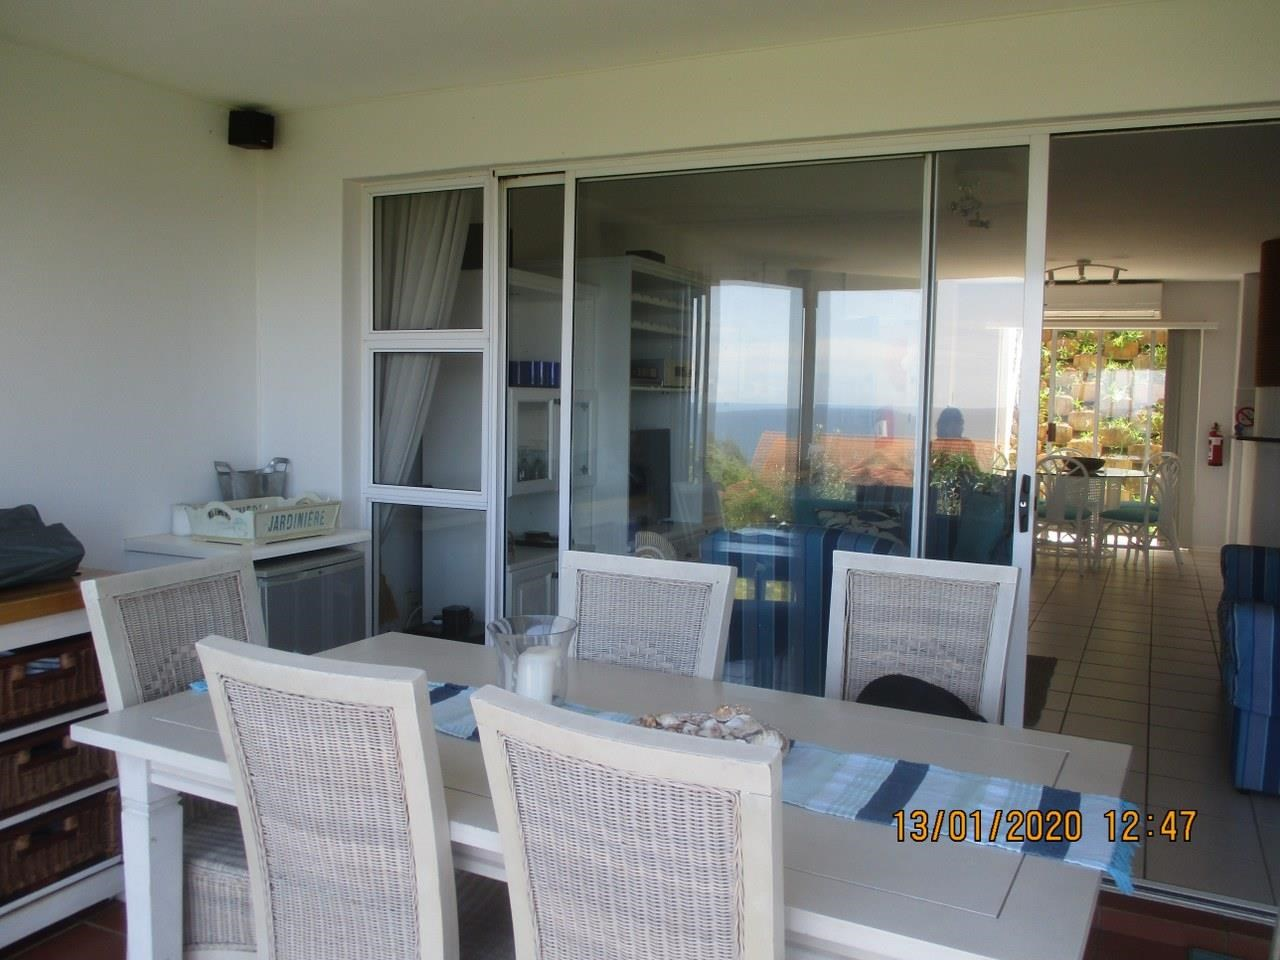 3 Bedroom Apartment for Sale in Ballito Central